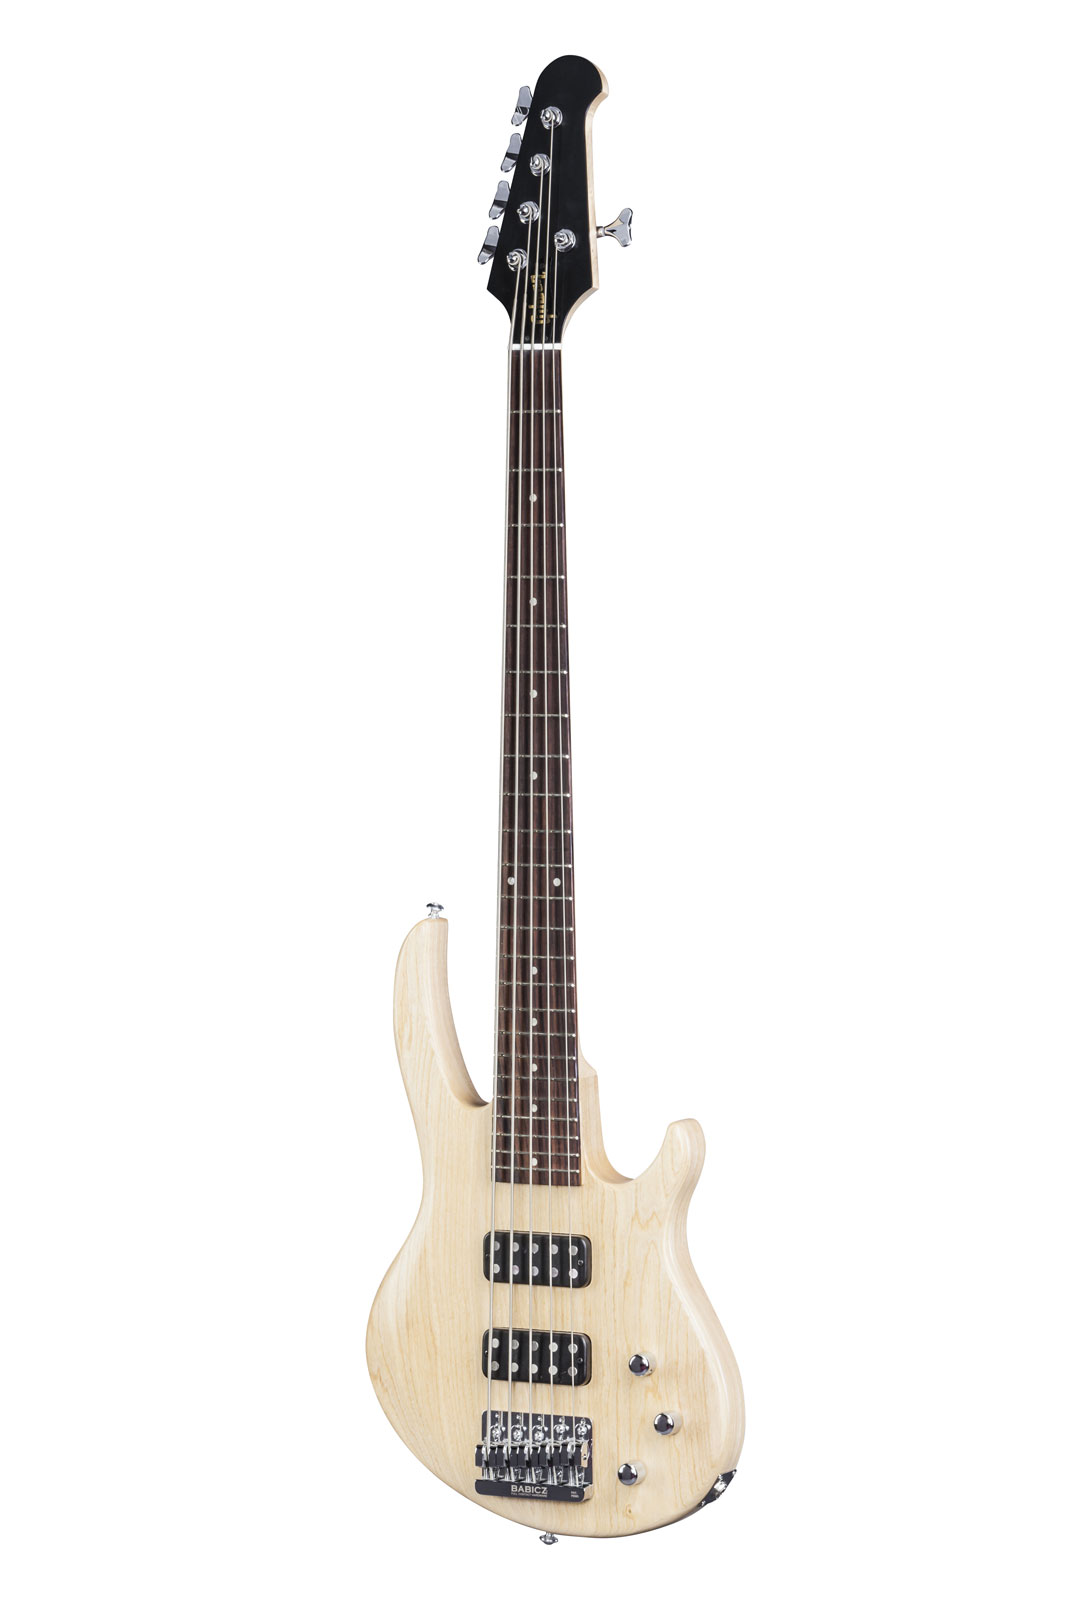 GIBSON EB BASS T 5 STRING 2017 NATURAL SATIN